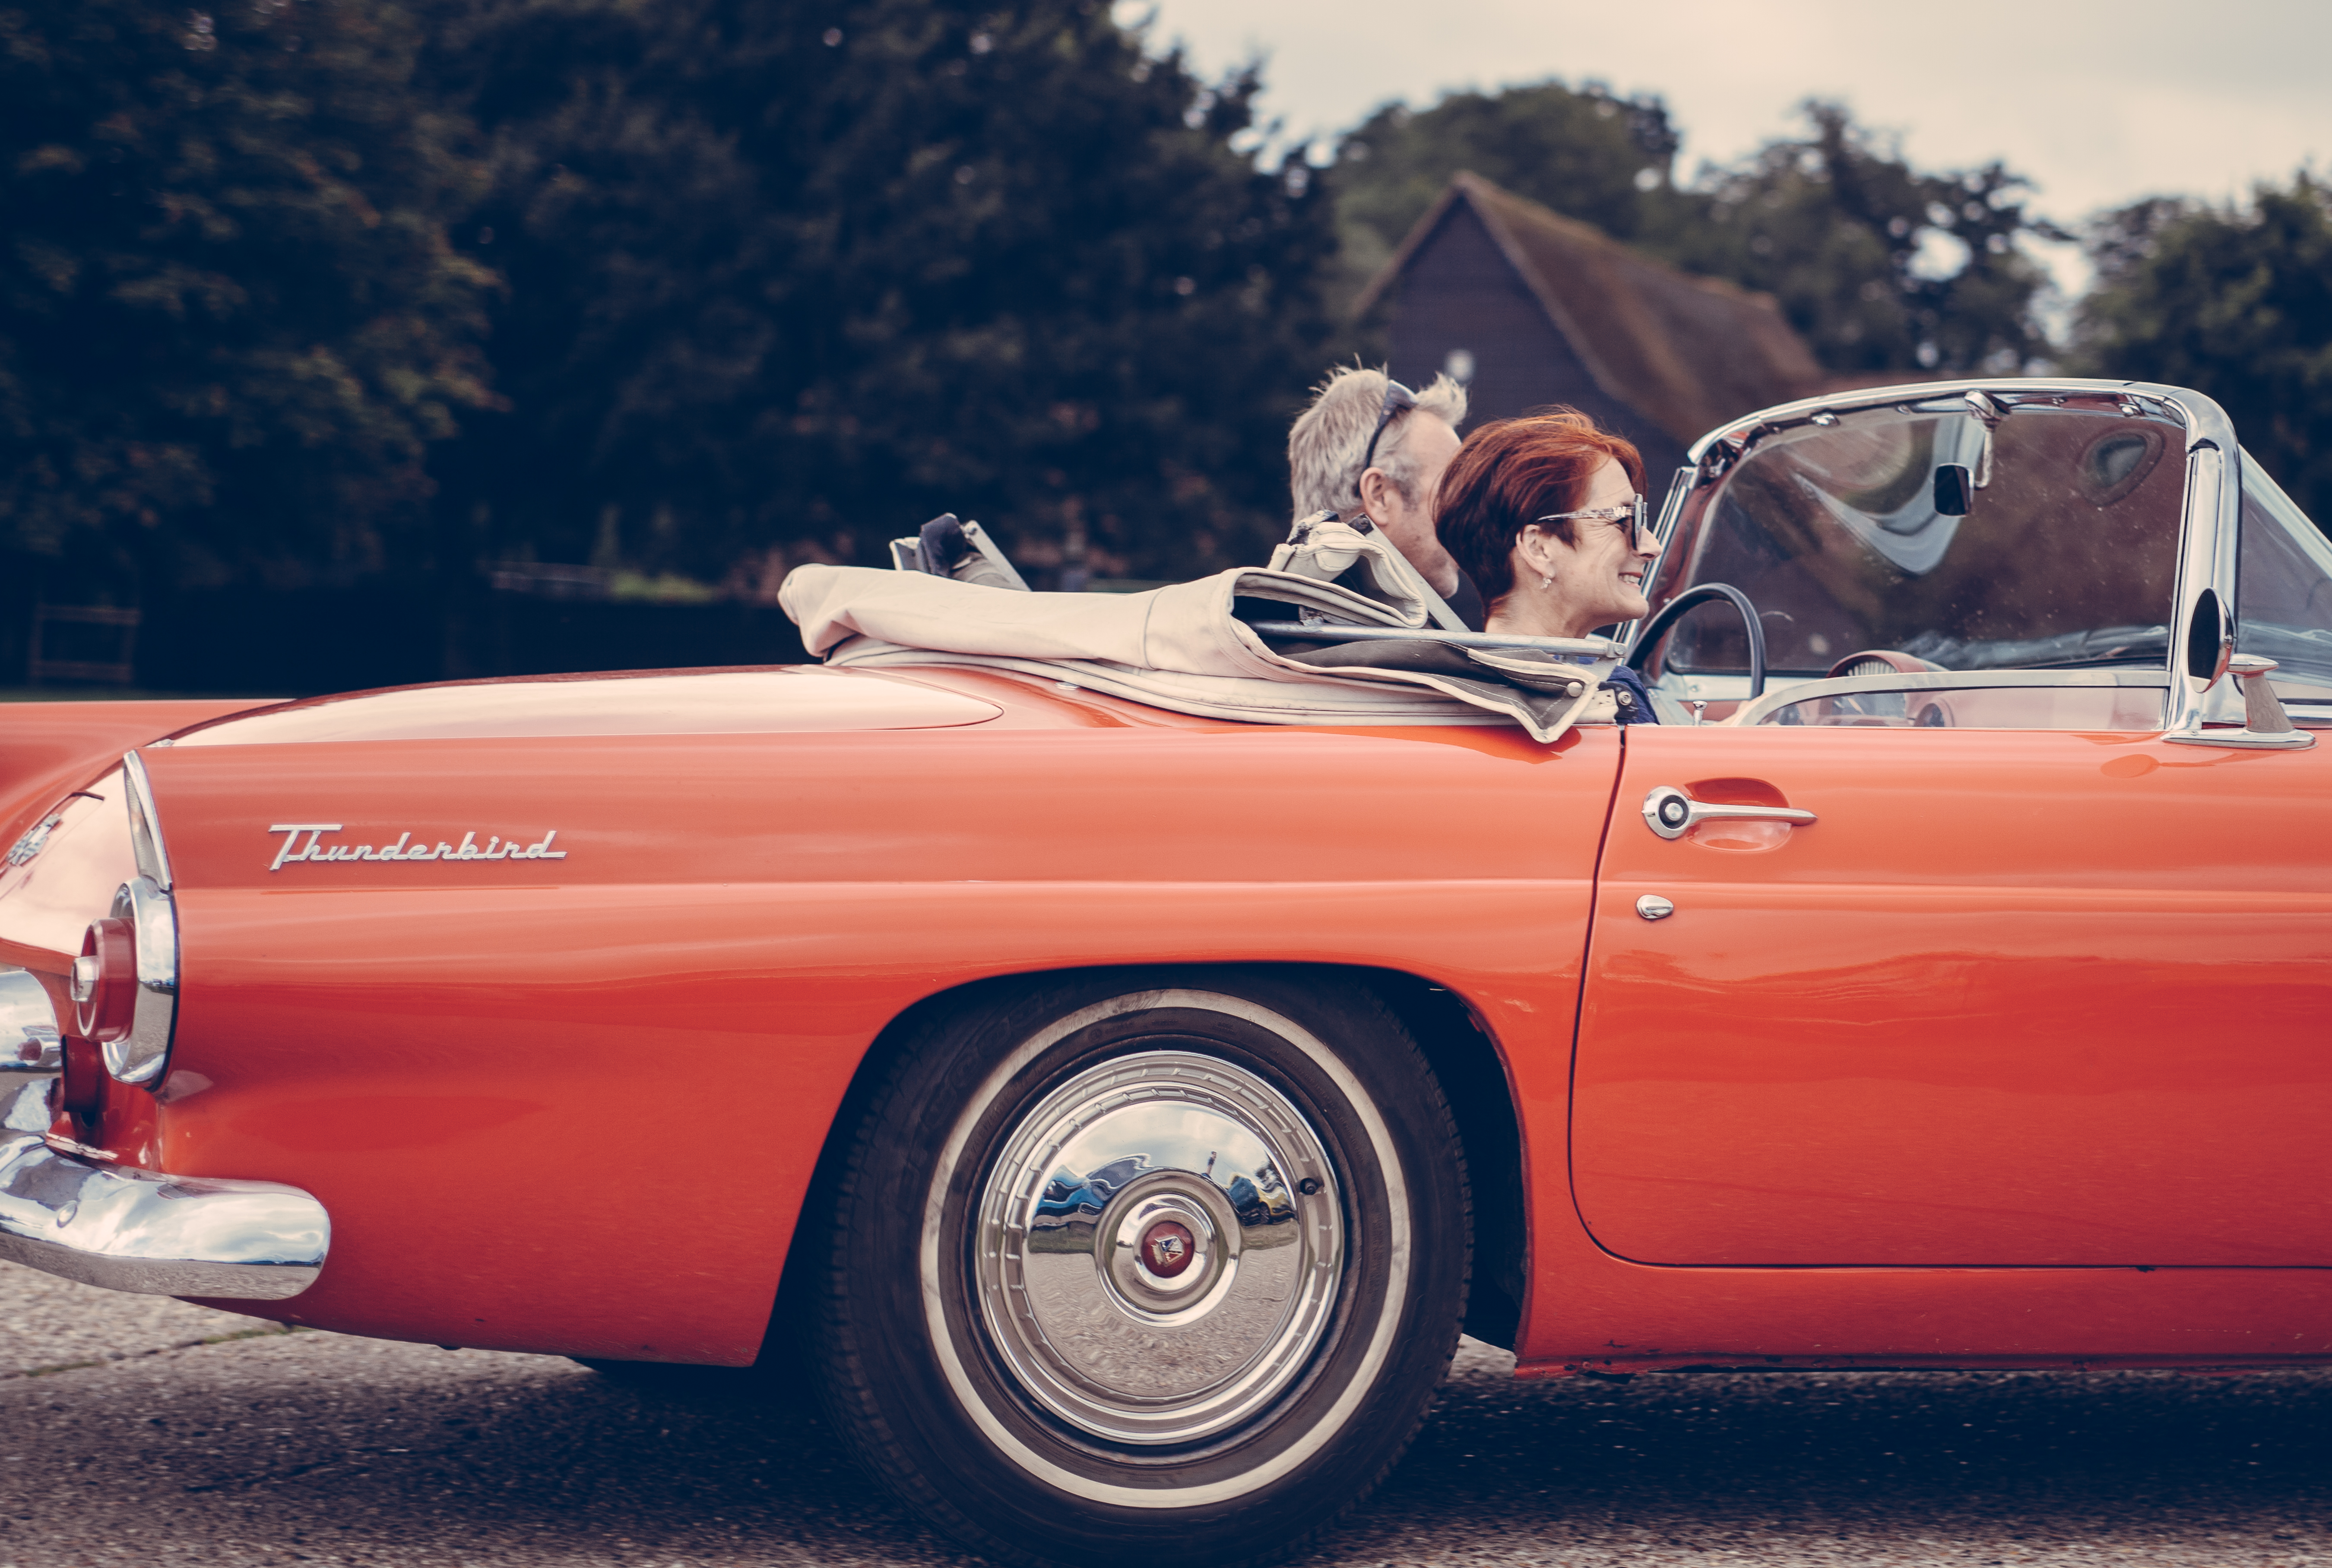 Free Stock Photos Of Vintage Car Pexels - Classic car search sites